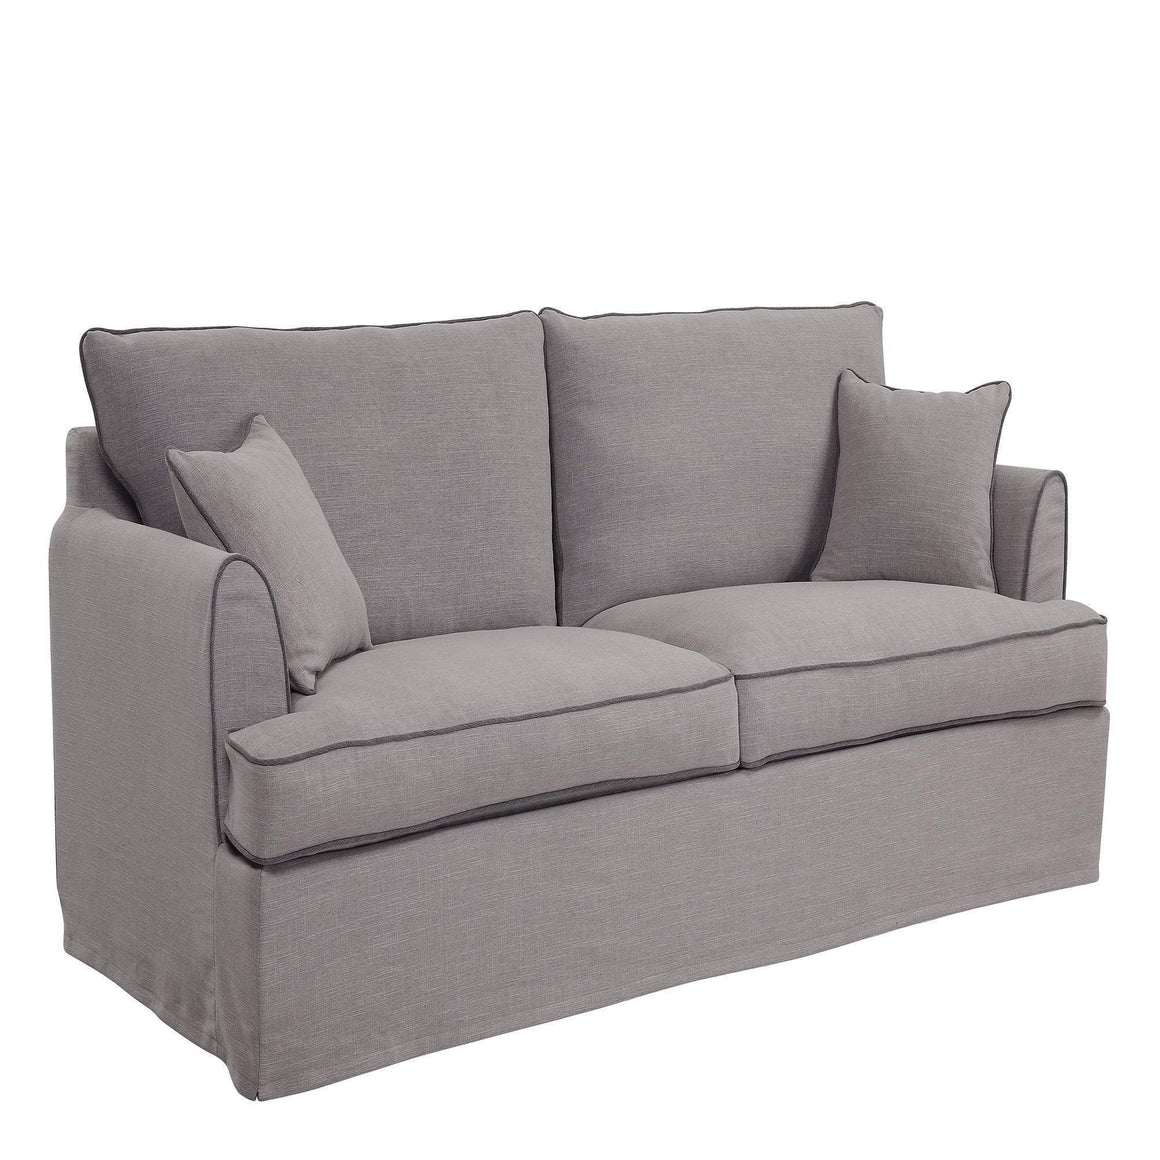 Byron Pebble Grey 3 Seat Sofa With Piping